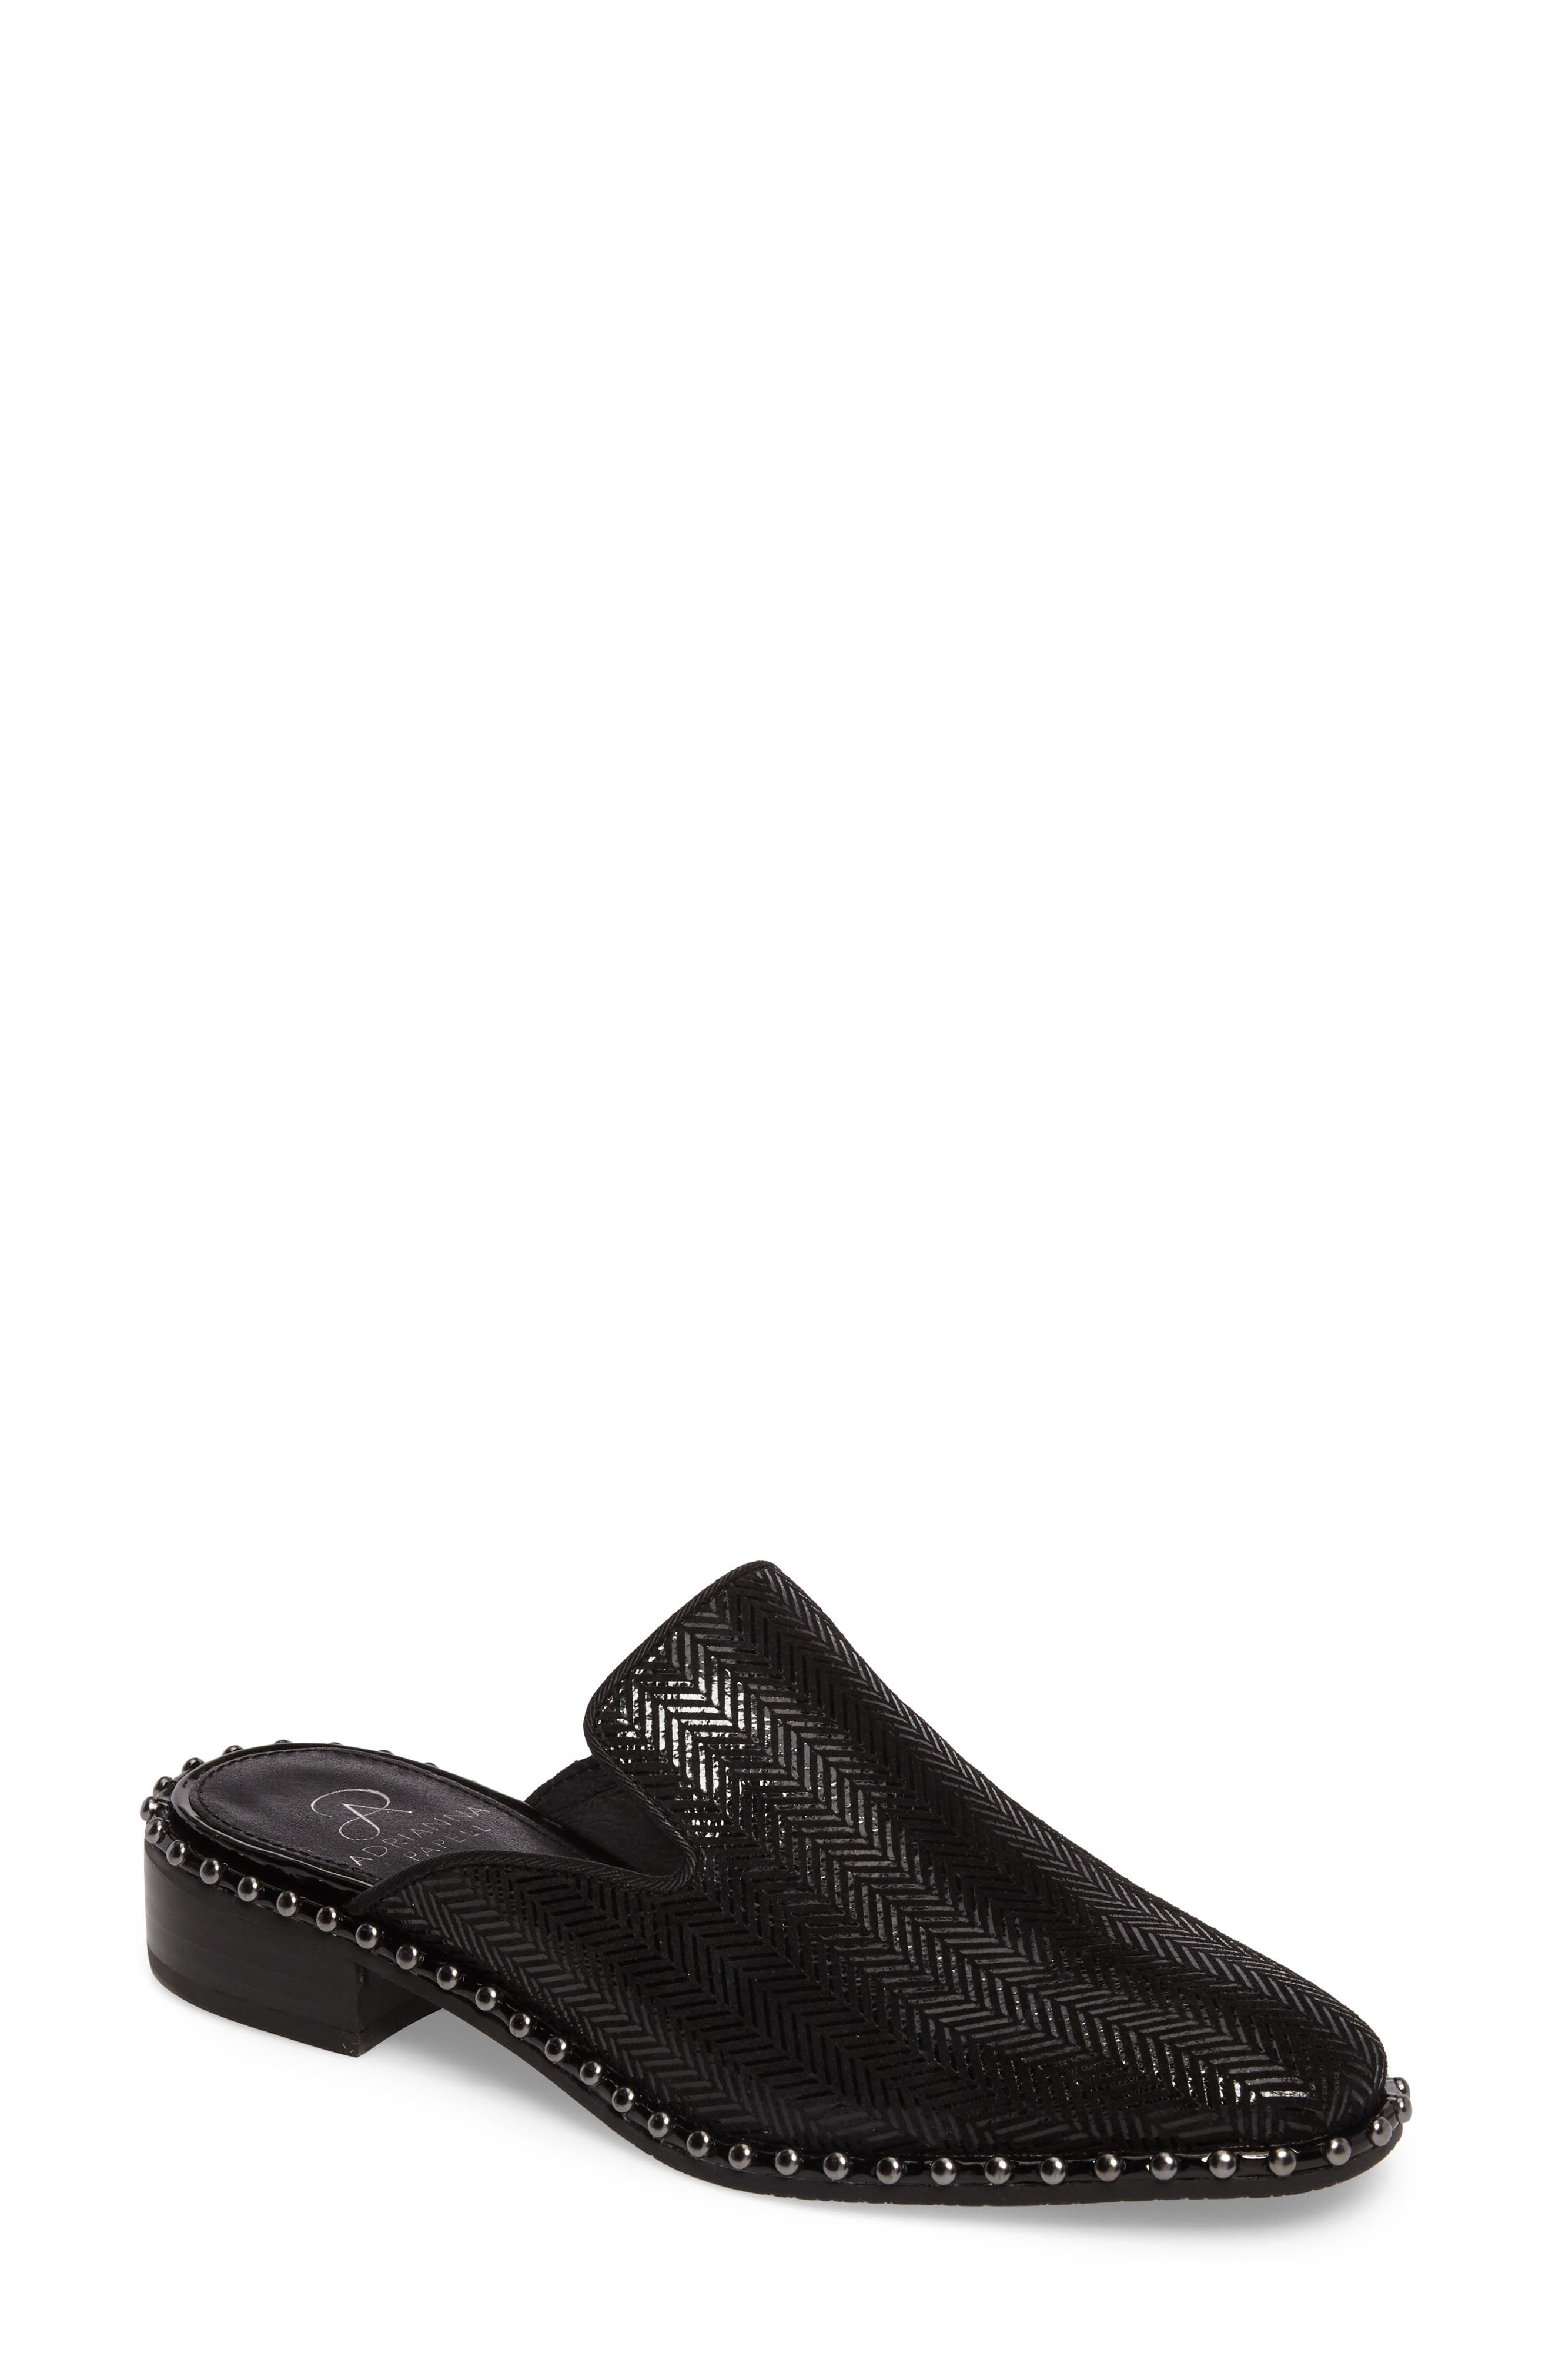 ADRIANNA PAPELL Pam Studded Mule